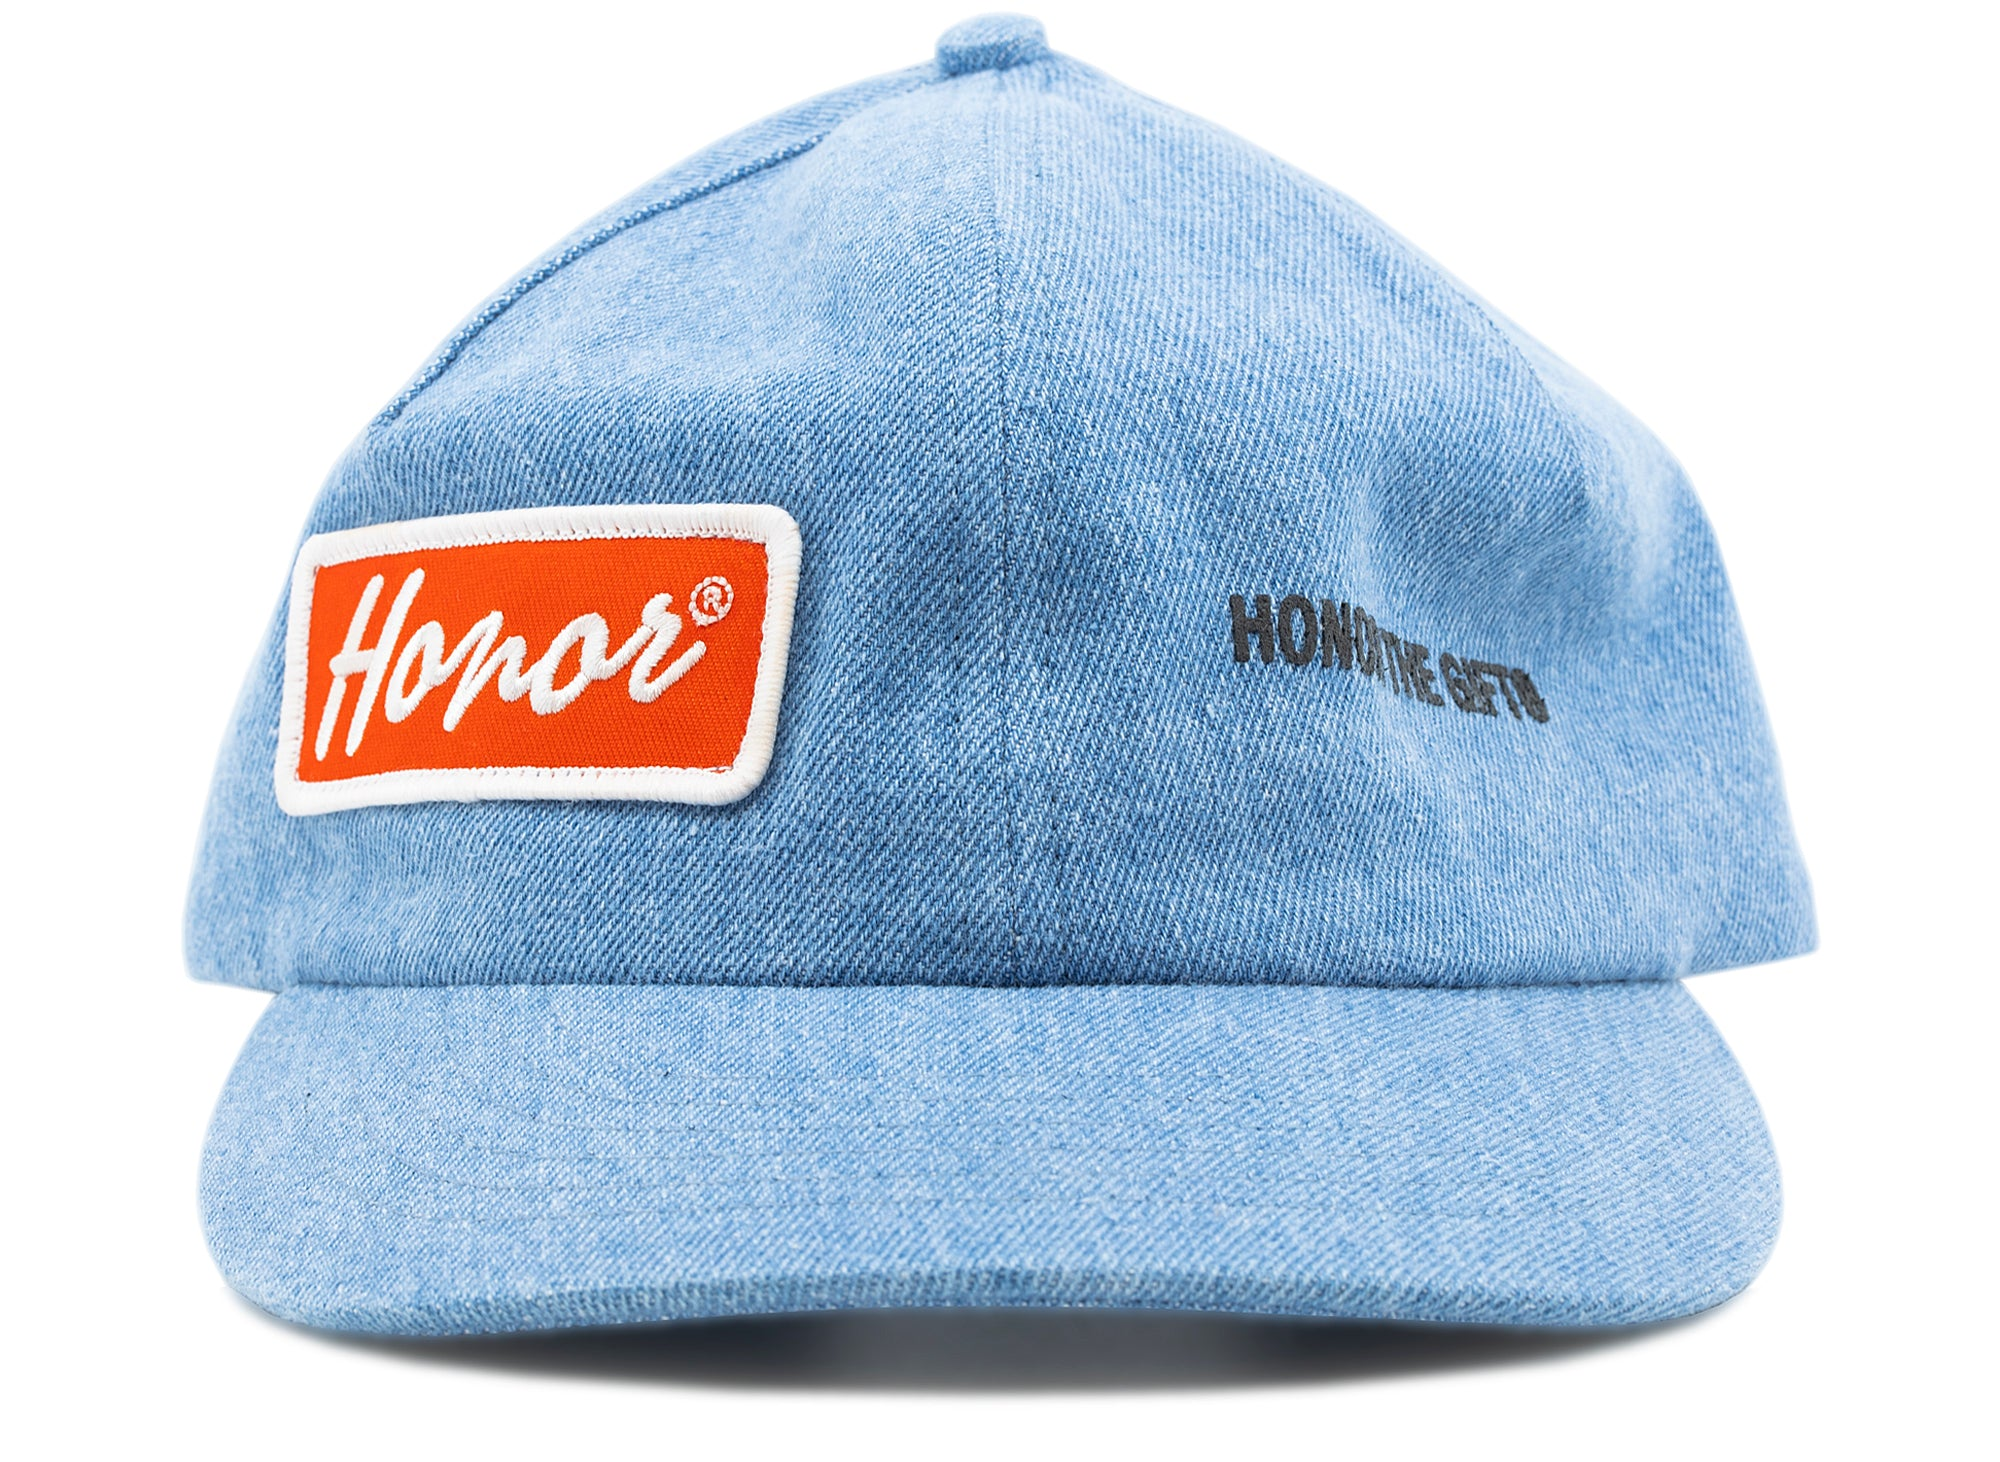 Honor the Gift Mechanic Cap xld